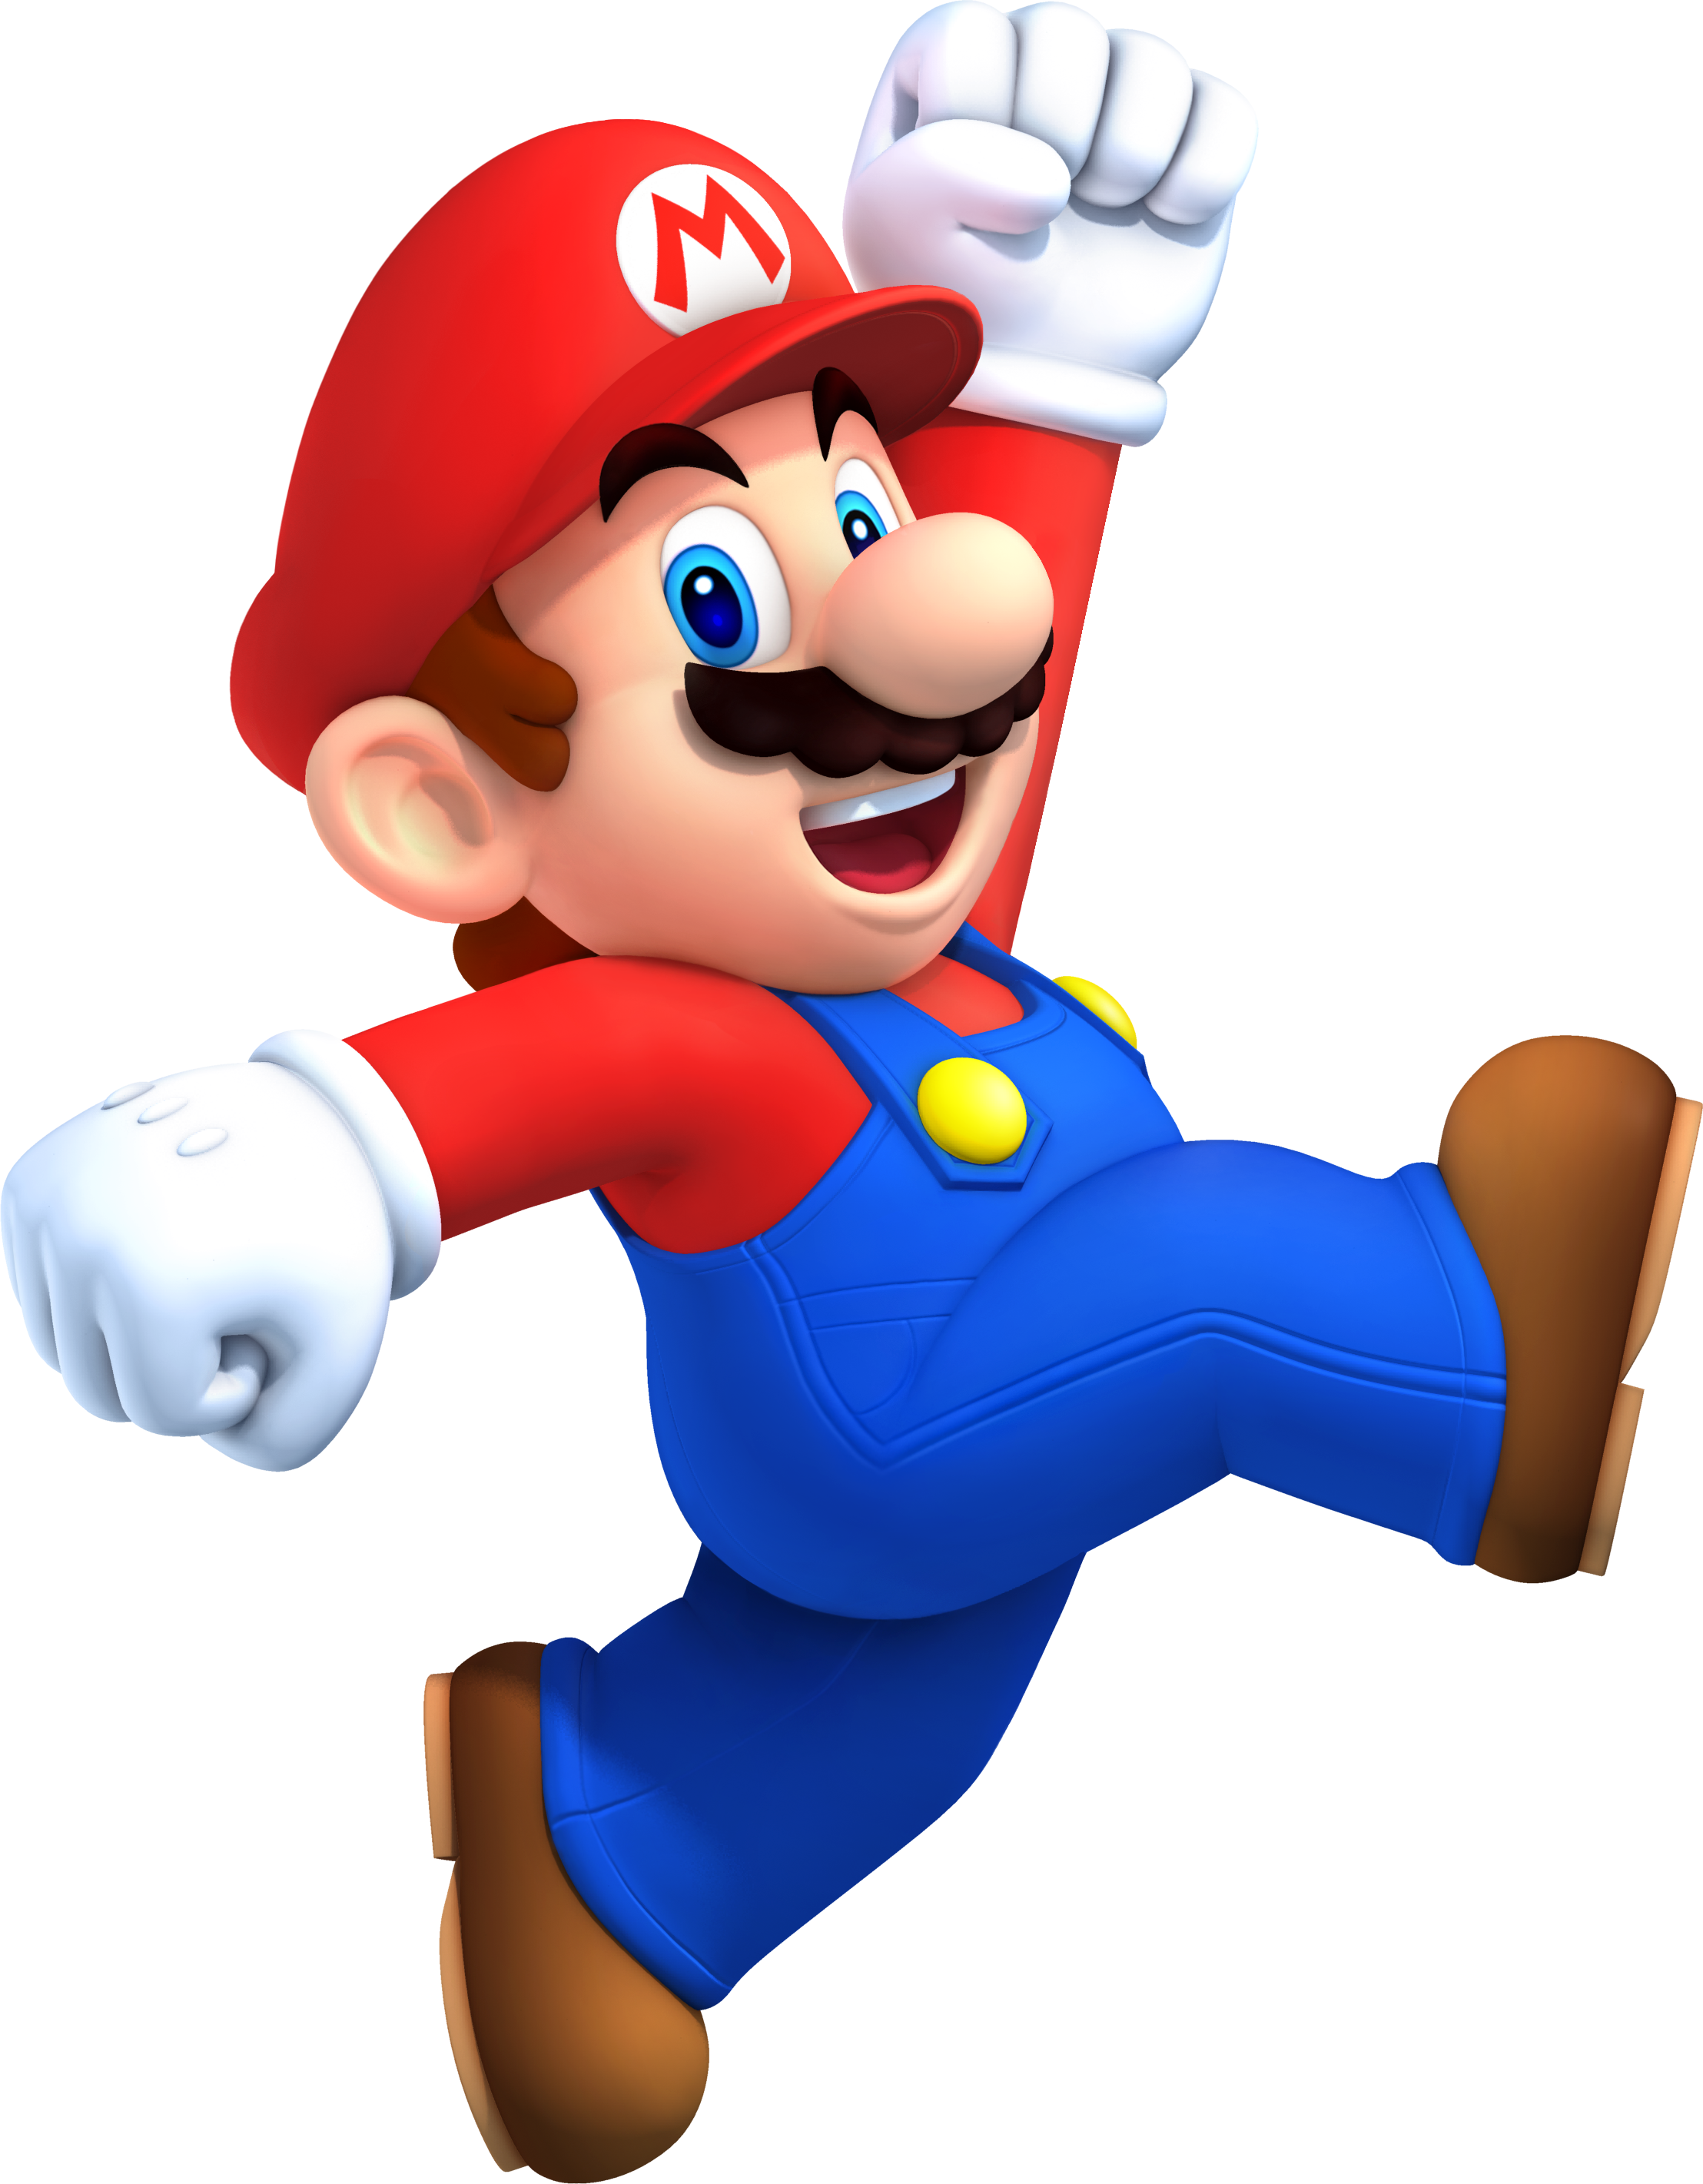 Super mario 64 cannon ball png. New bros mariowiki fandom